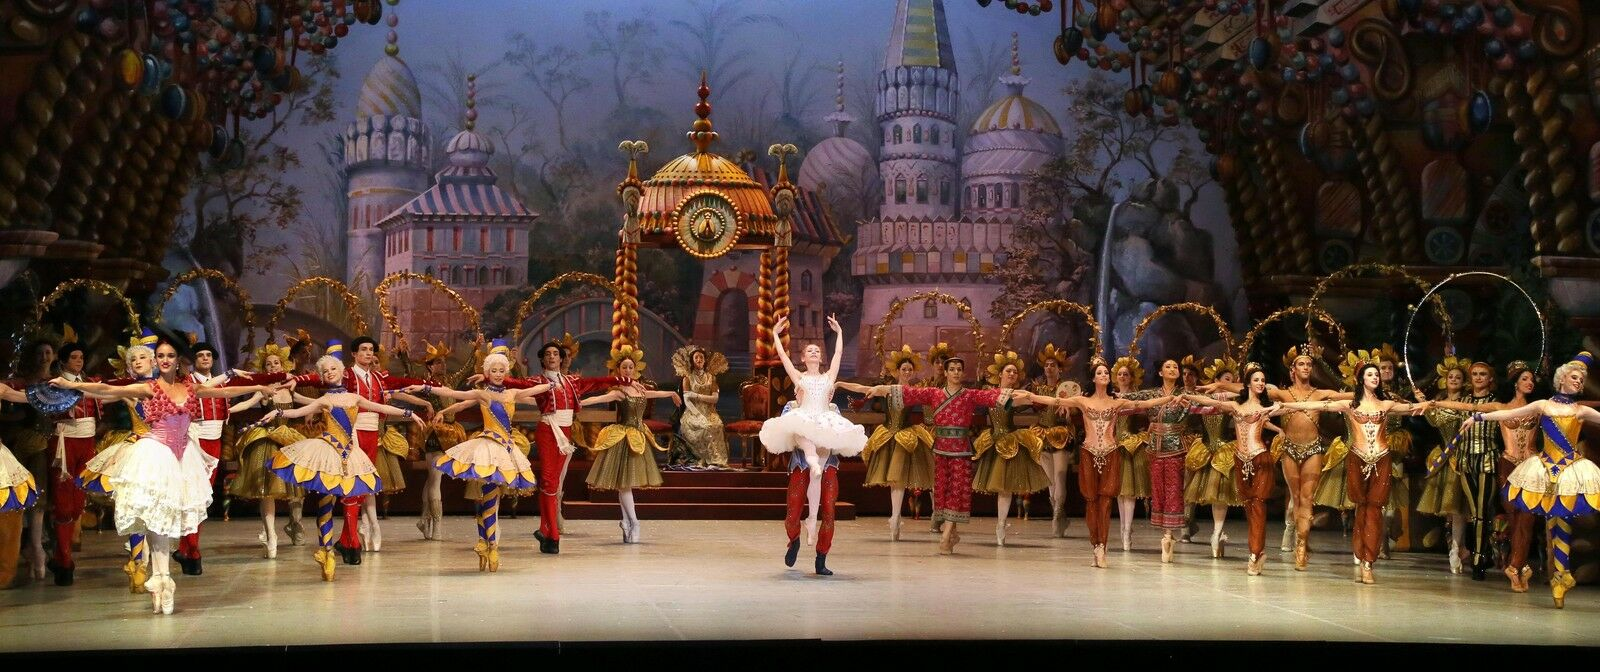 The Nutcracker Washington D.C.